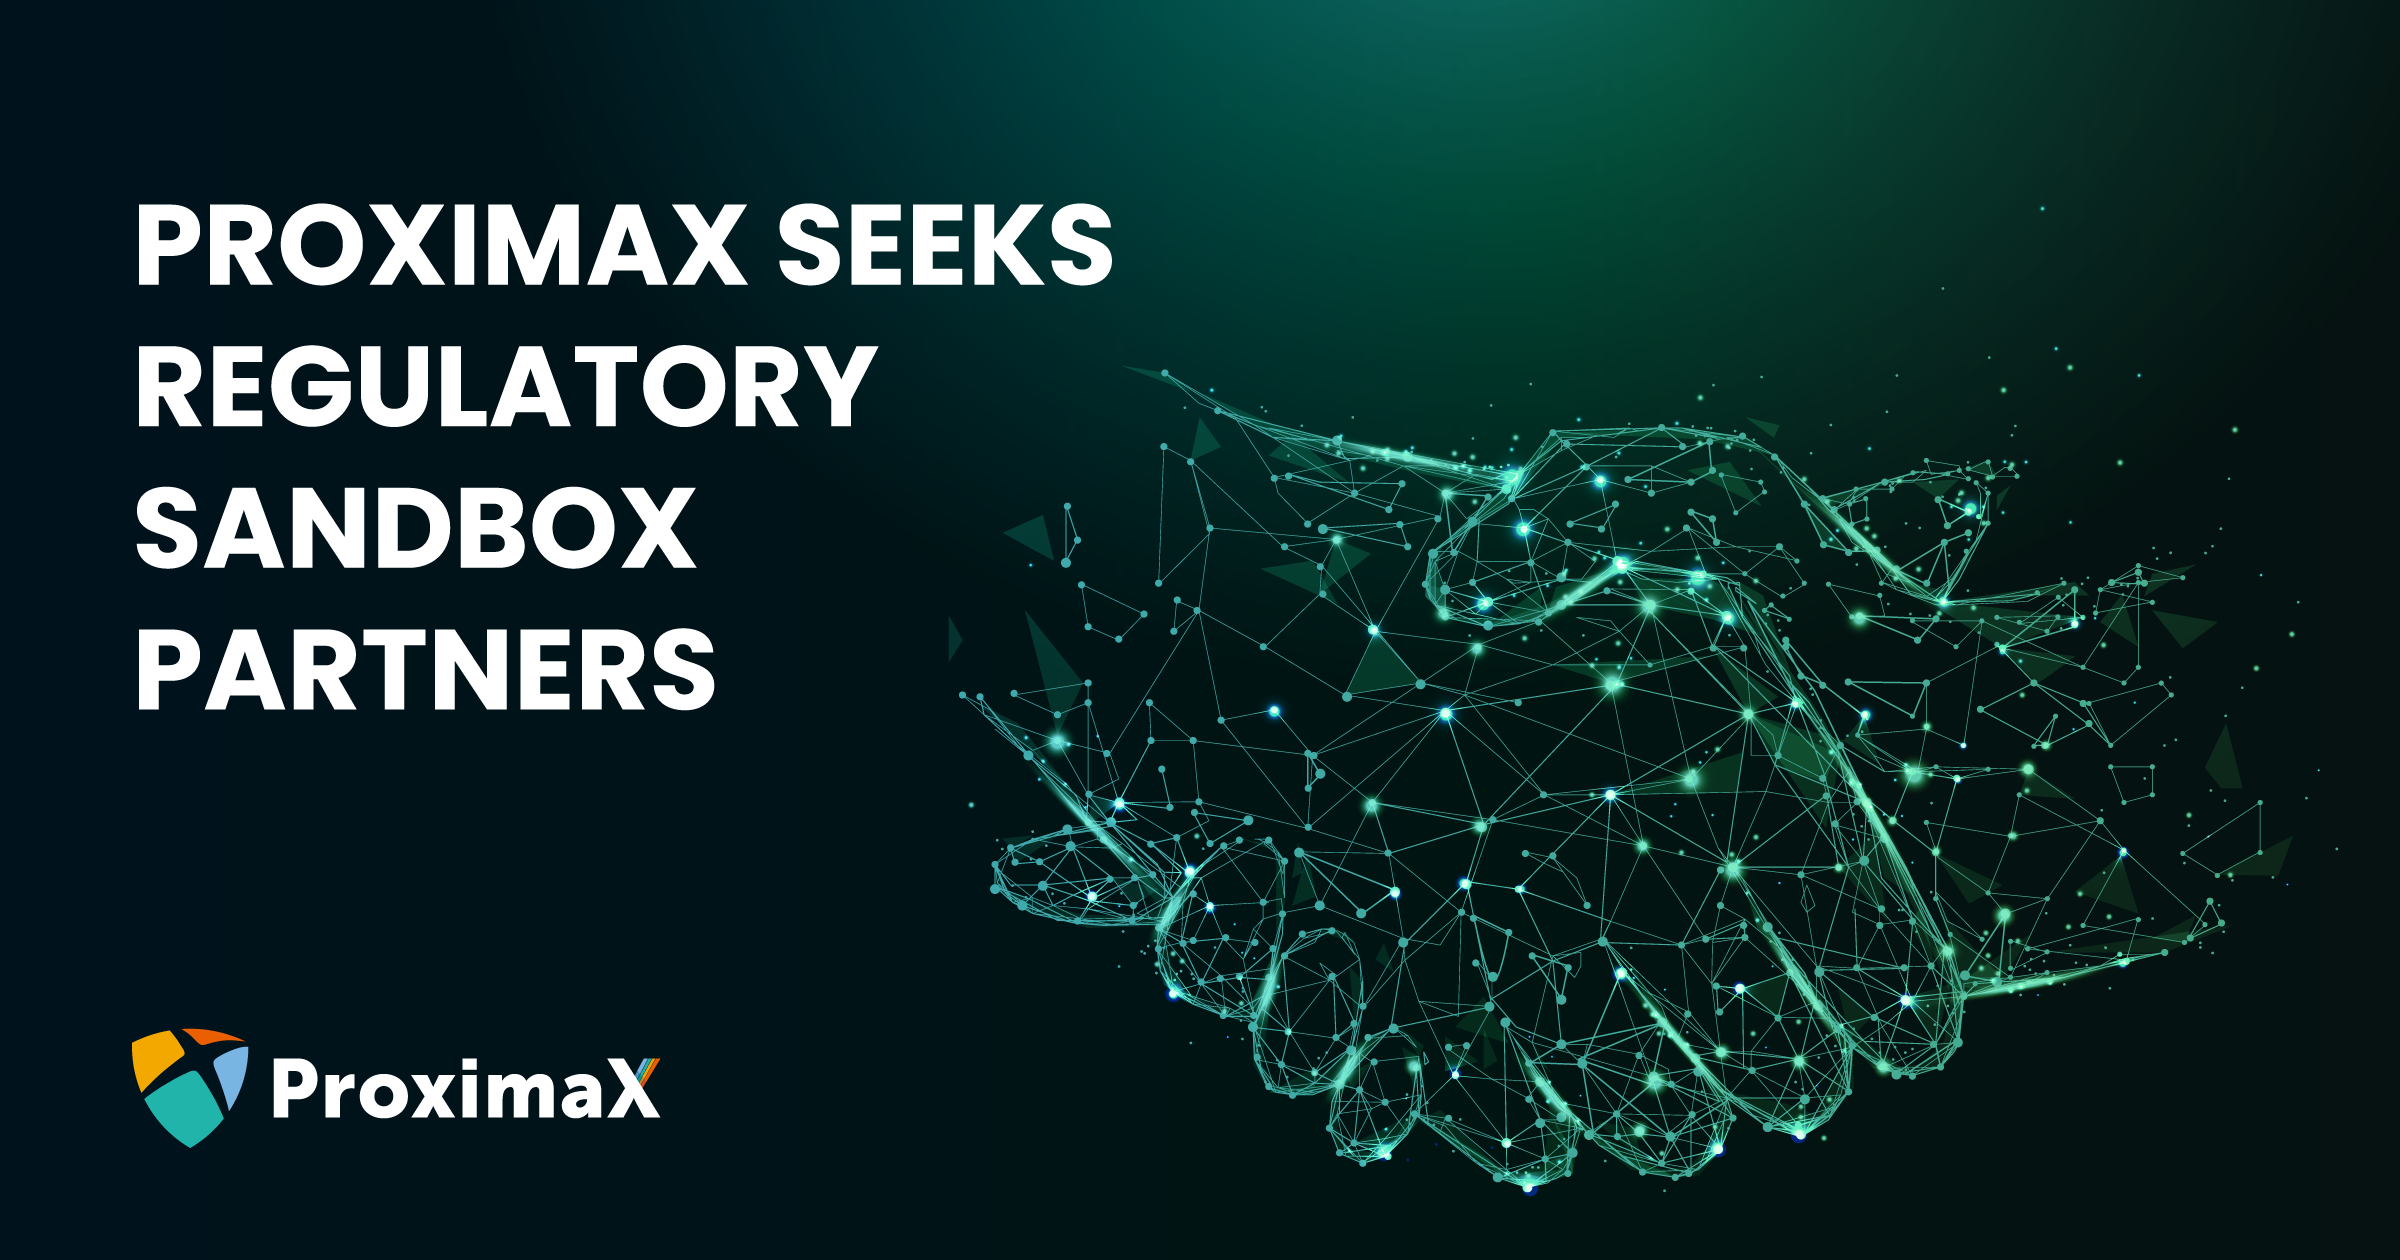 ProximaX seeks multi-jurisdictional regulatory sandbox partners for capital markets solution